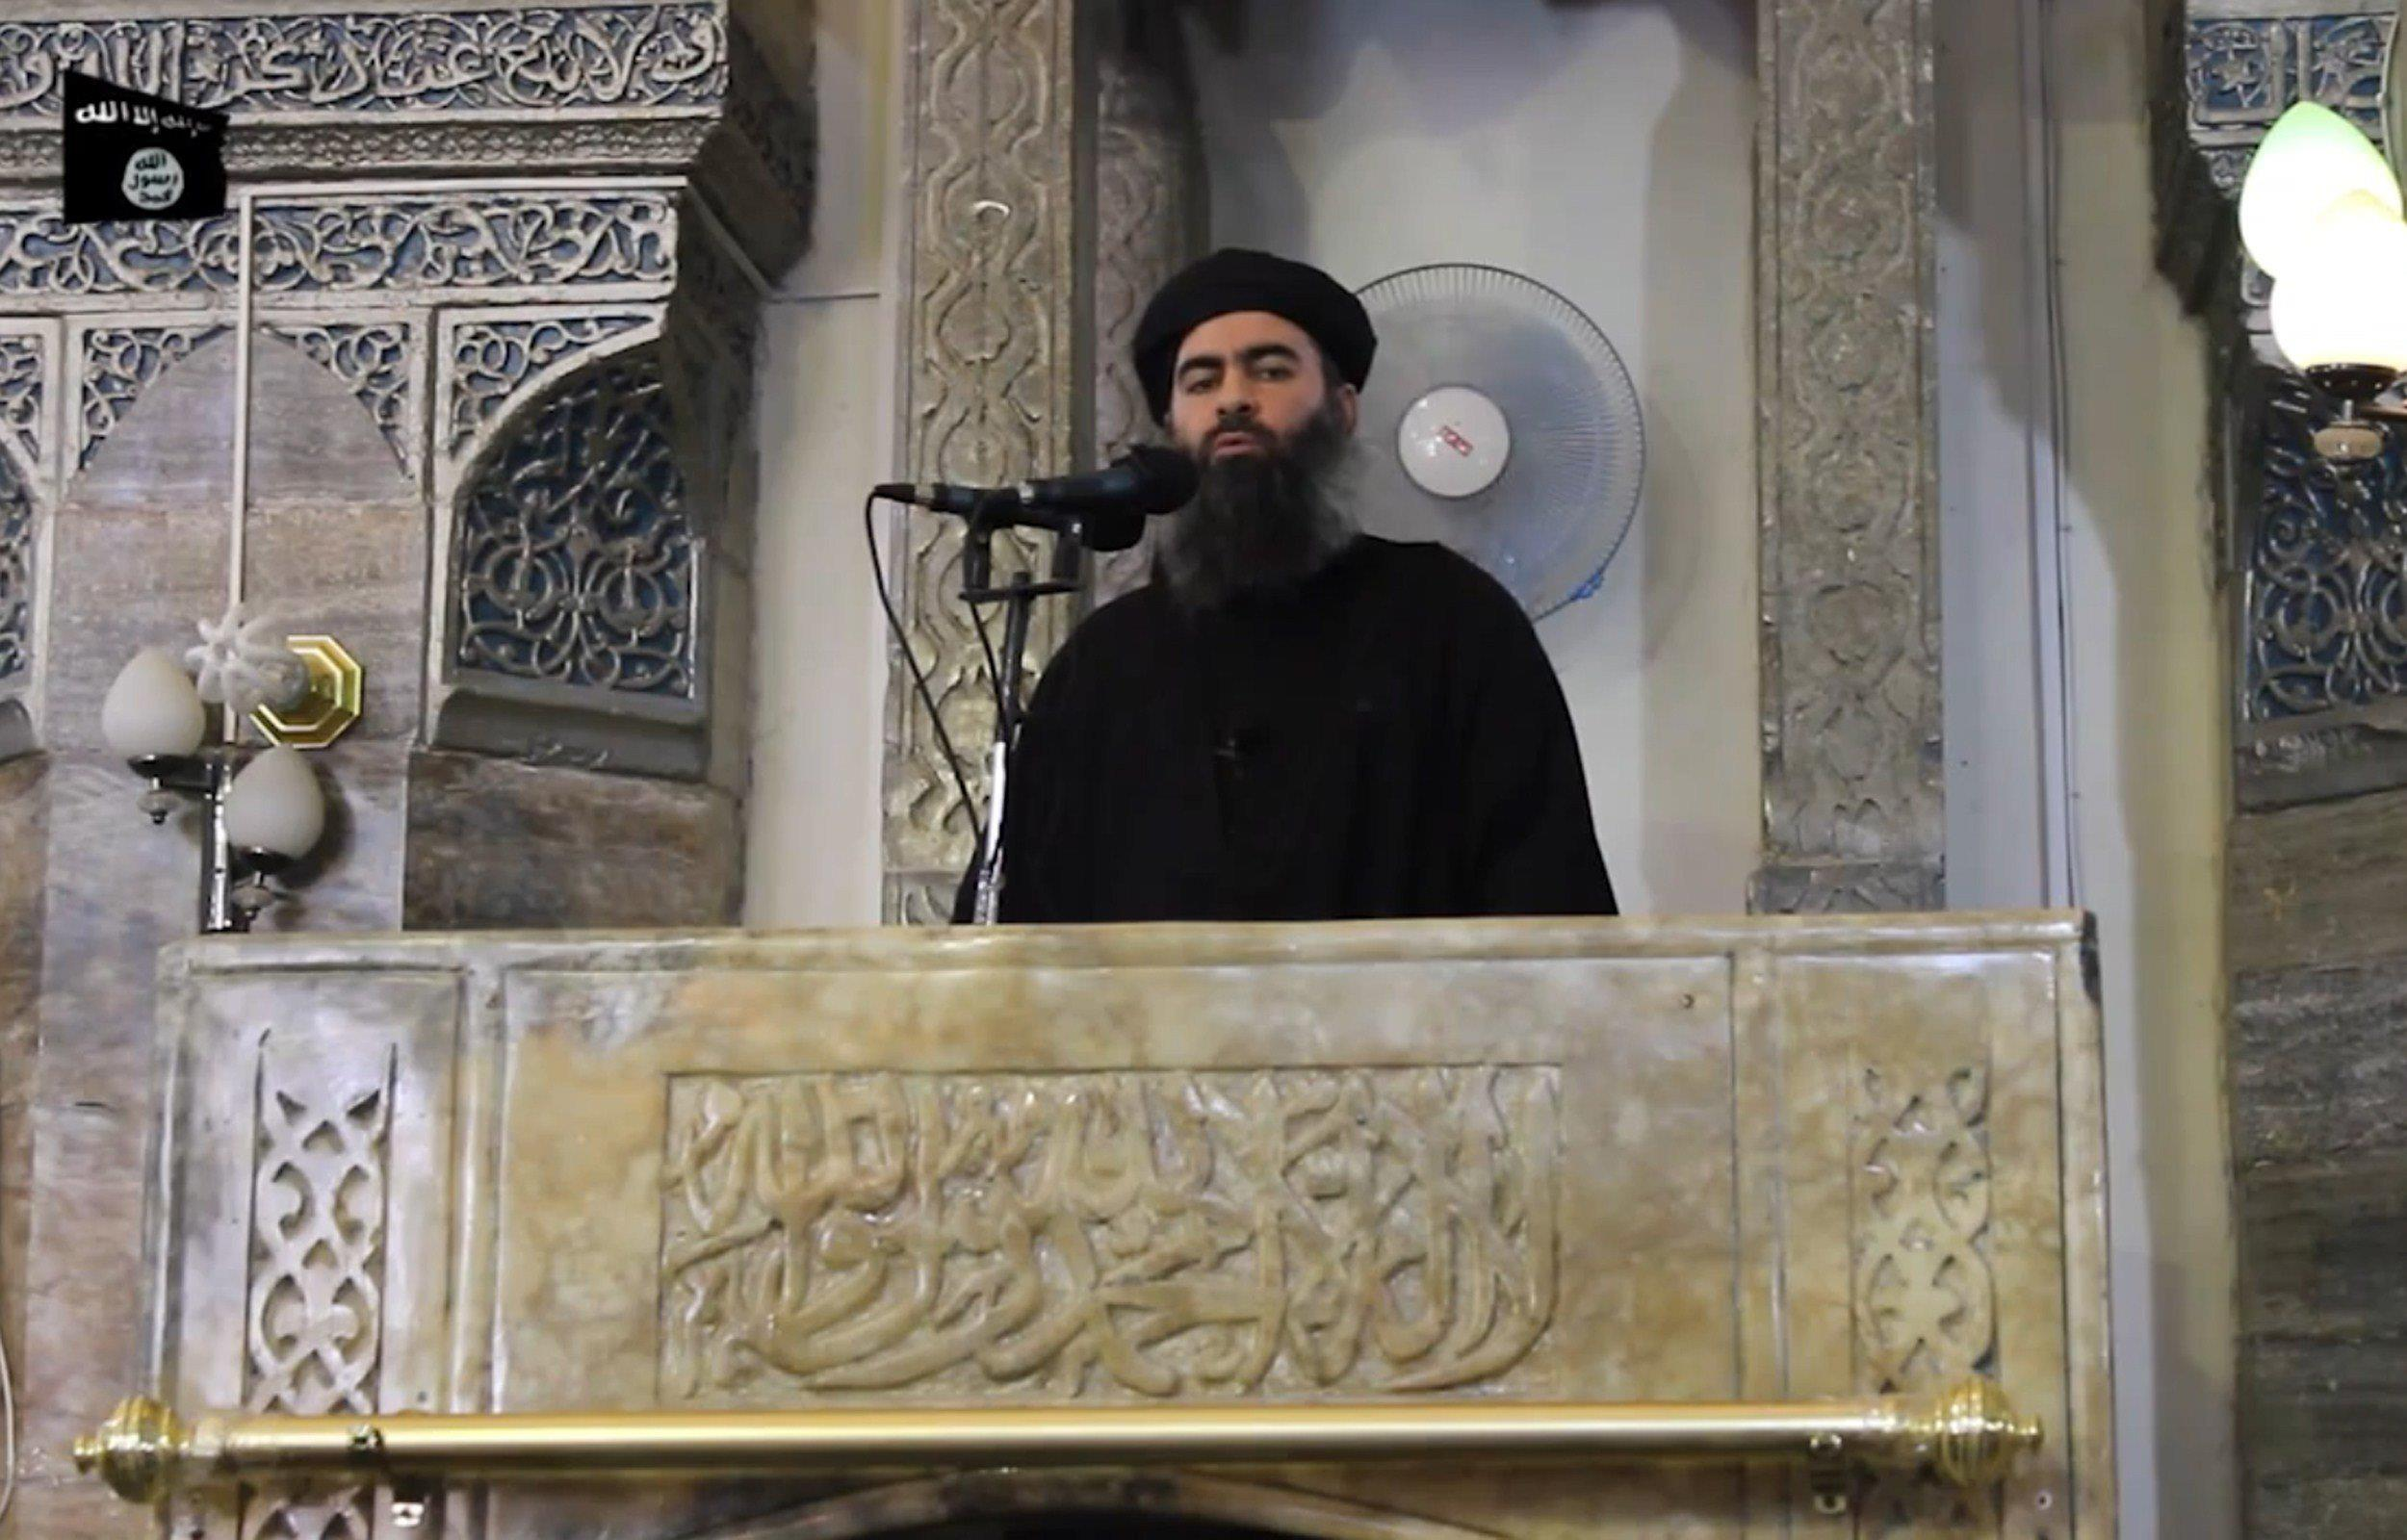 Image: the leader of the Islamic State (IS) jihadist group, Abu Bakr al-Baghdadi,